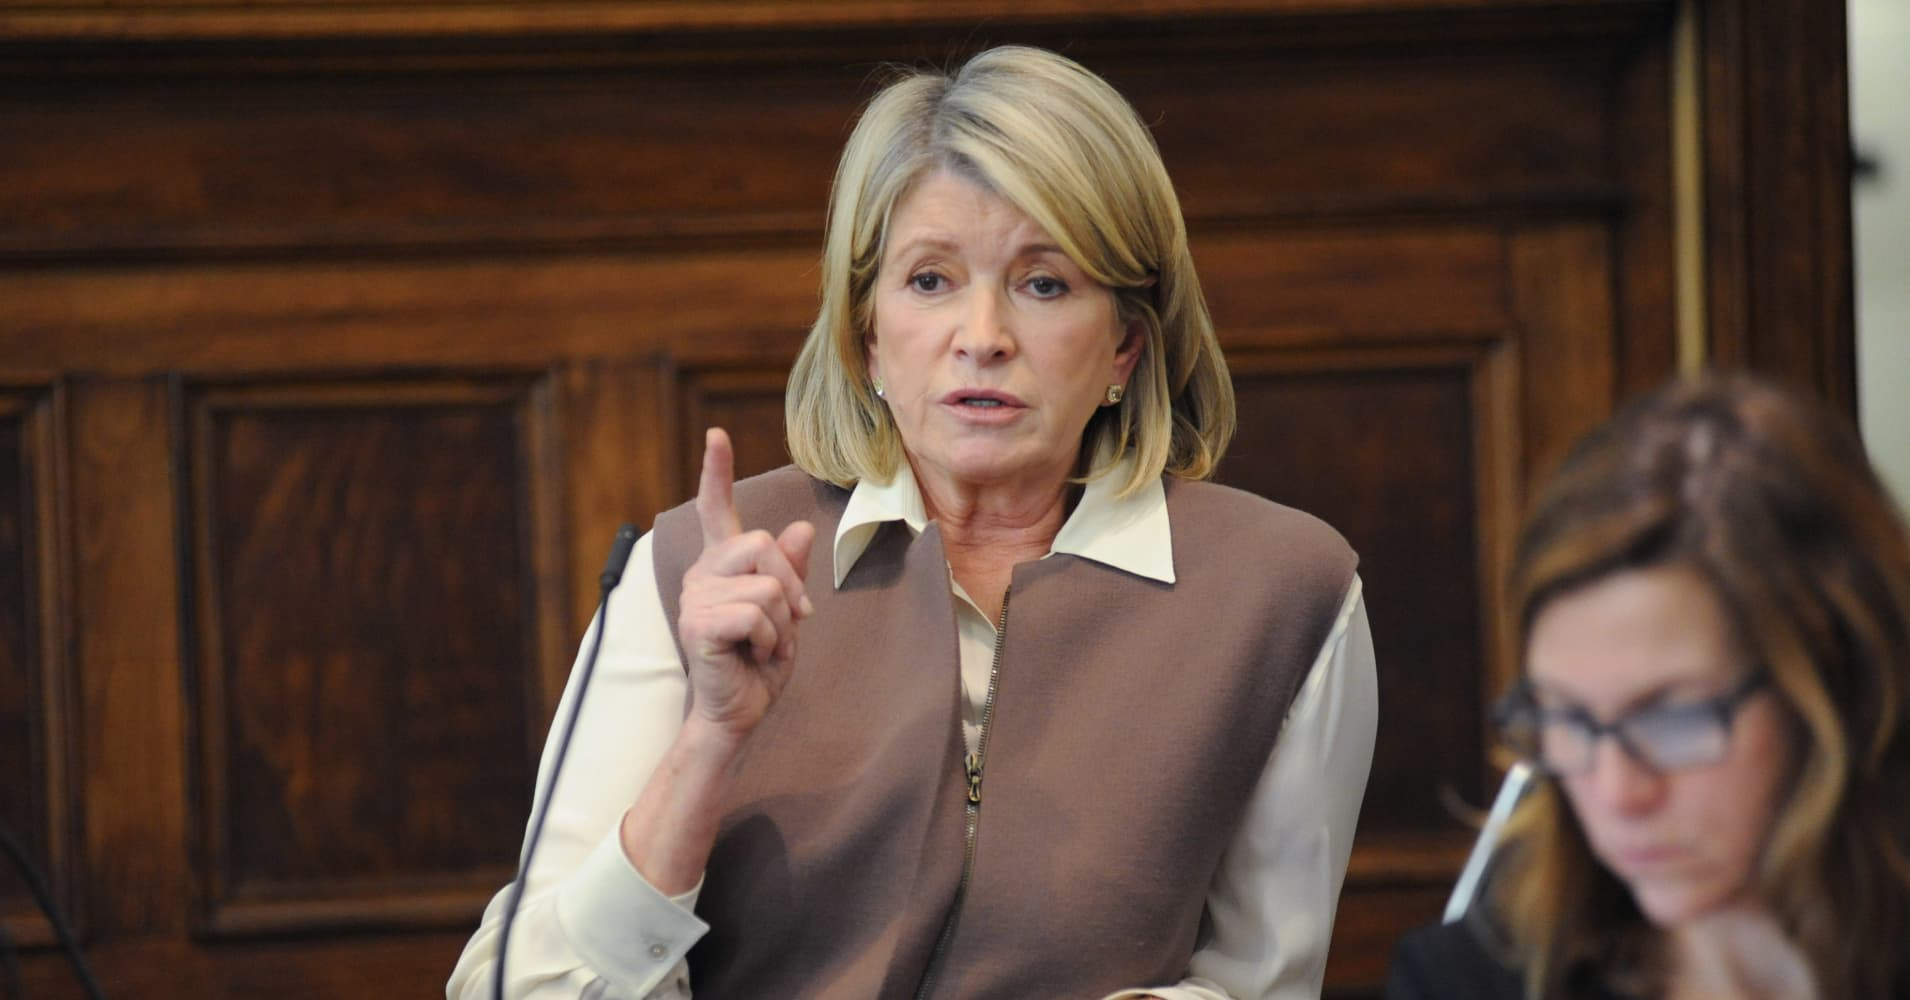 martha stewart trial As jury selection began in the martha stewart trial, a prospective juror told gawkercom about a 35-page questionnaire used to decide whether jurors will be accepted.